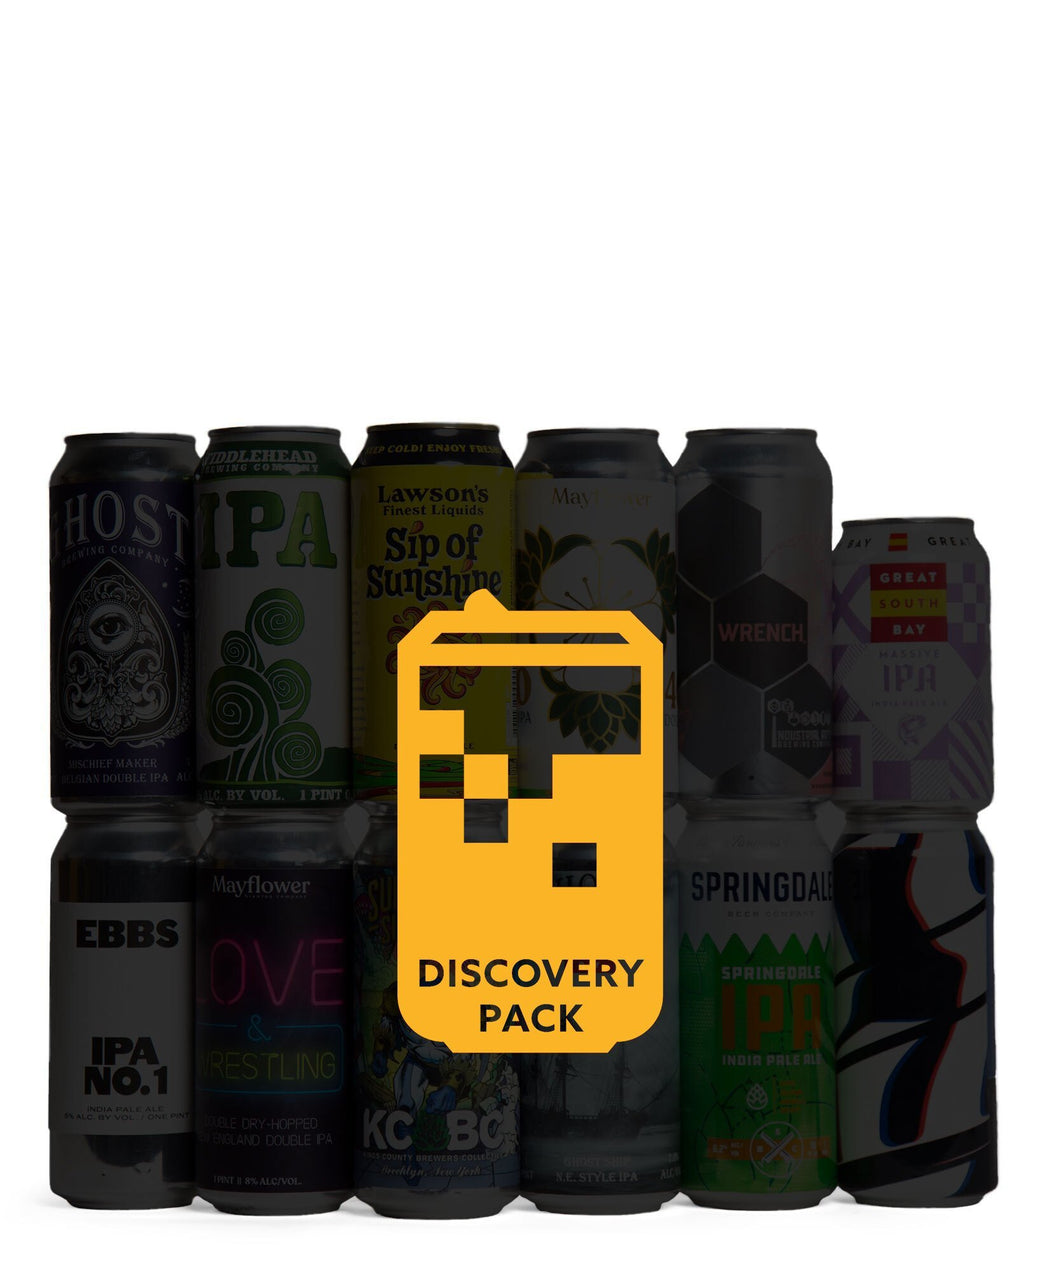 Discovery Variety 12 Pack - TapRm Delivered By TapRm